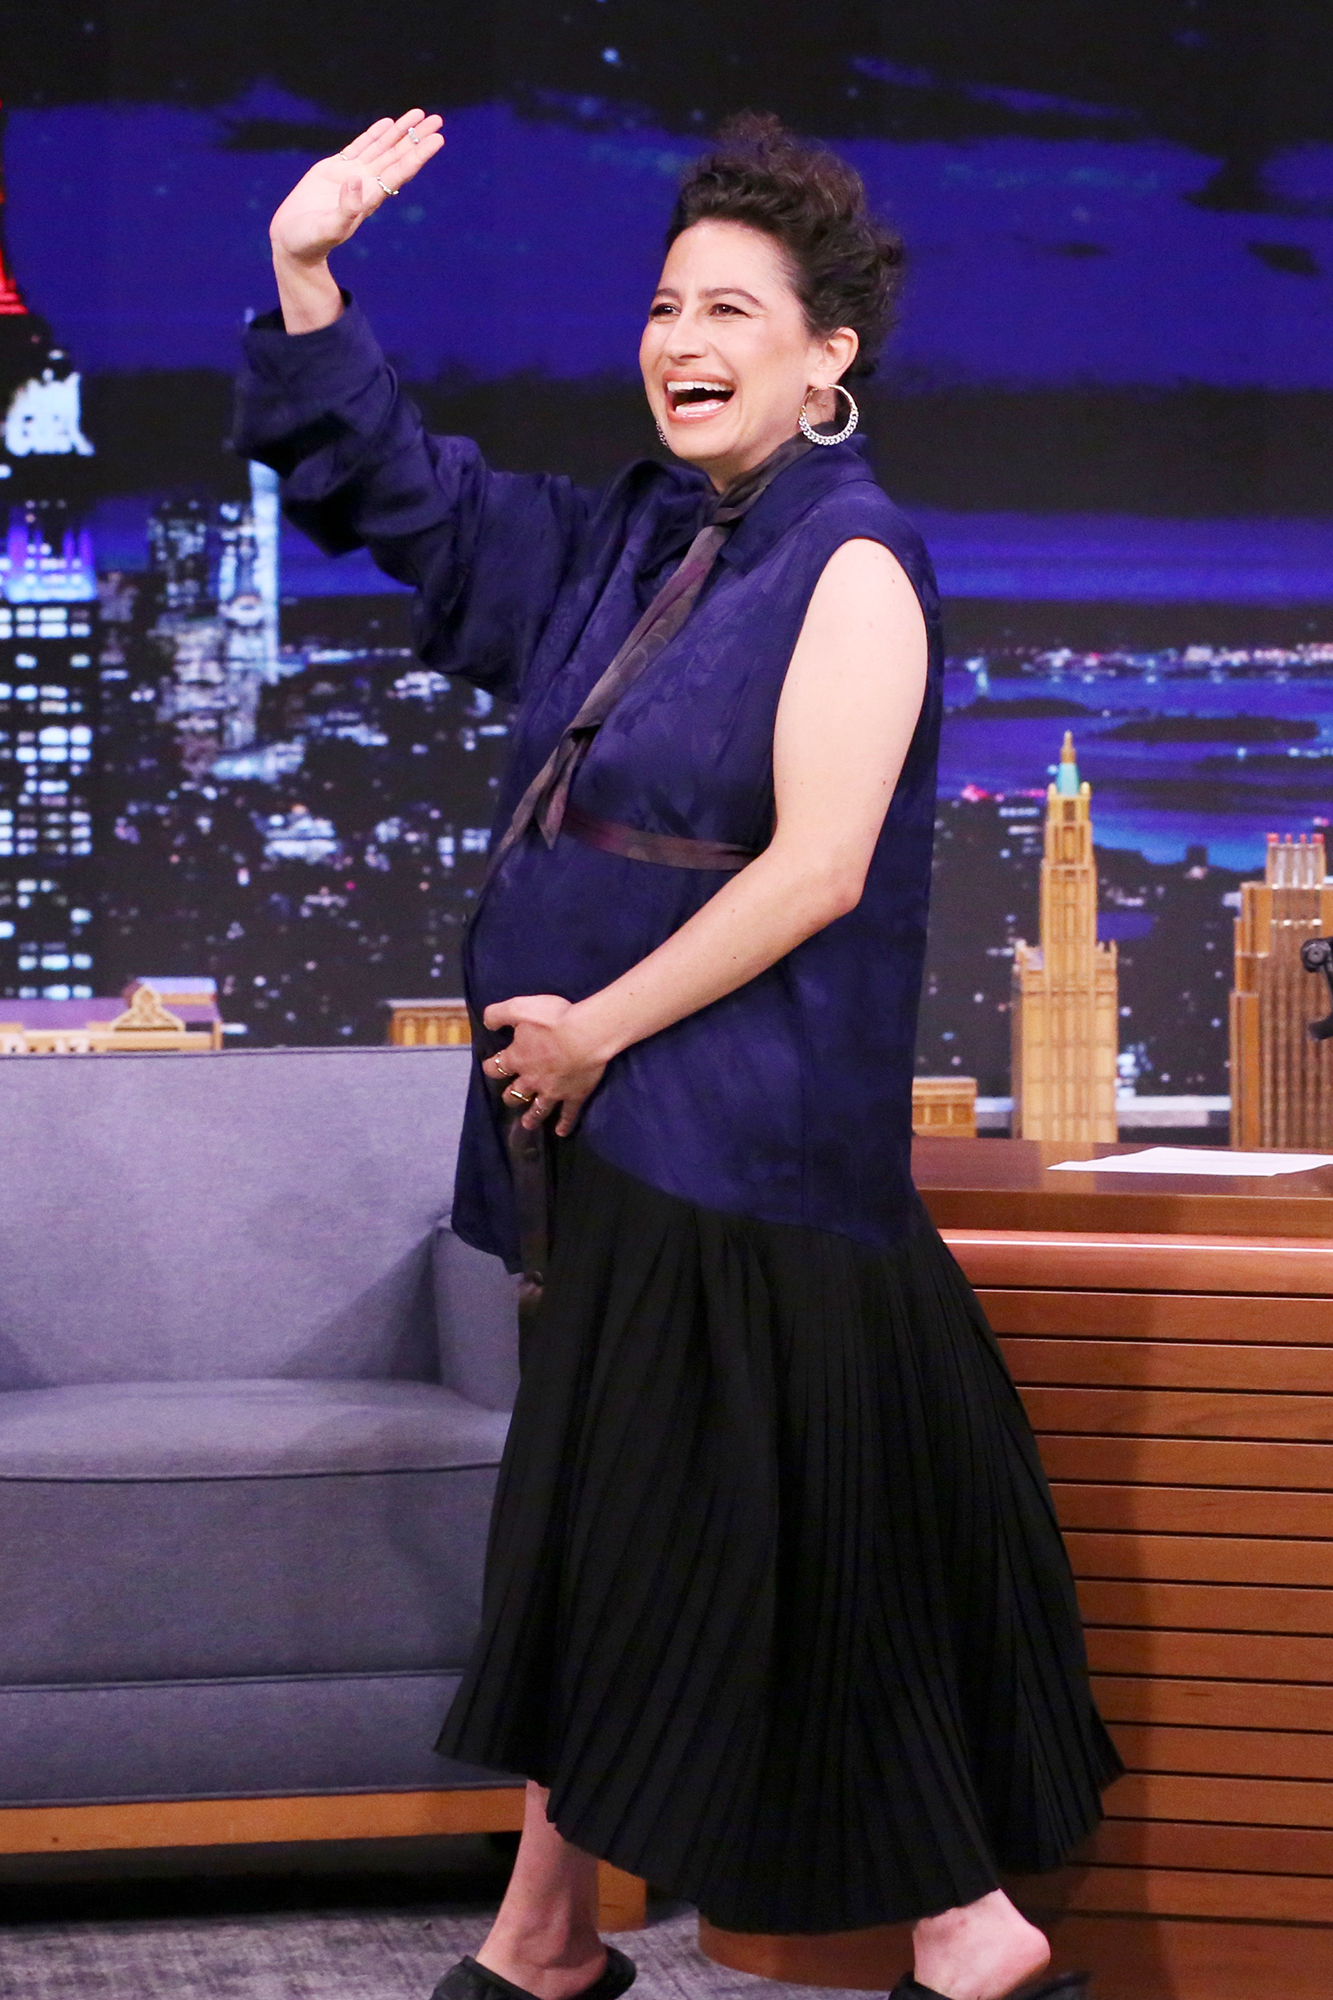 THE TONIGHT SHOW STARRING JIMMY FALLON -- Episode 1479 -- Pictured: Actress Ilana Glazer arrives on Monday, June 14, 2021 -